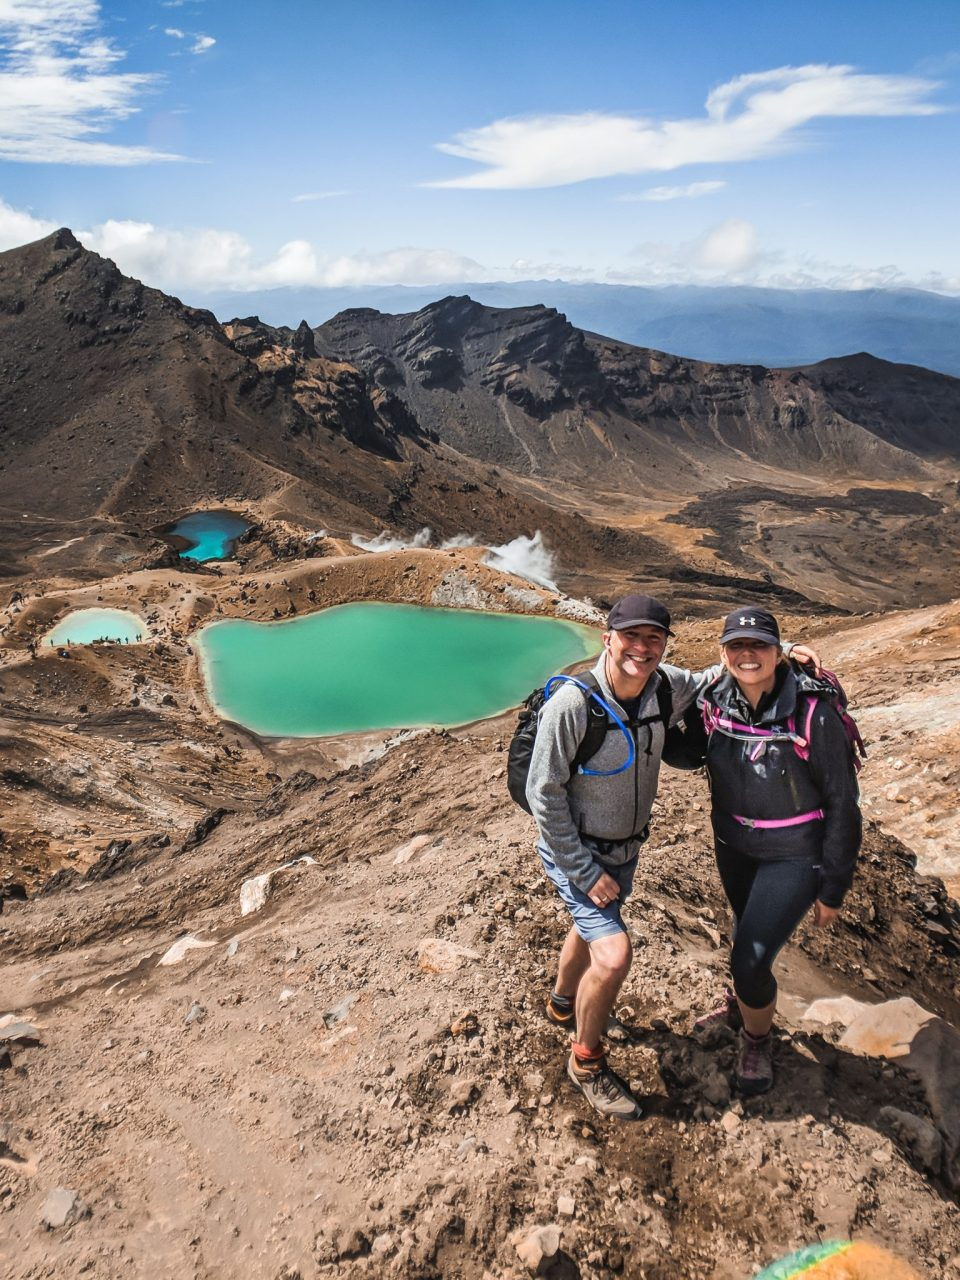 Hiking the Tongariro Crossing on the North Island